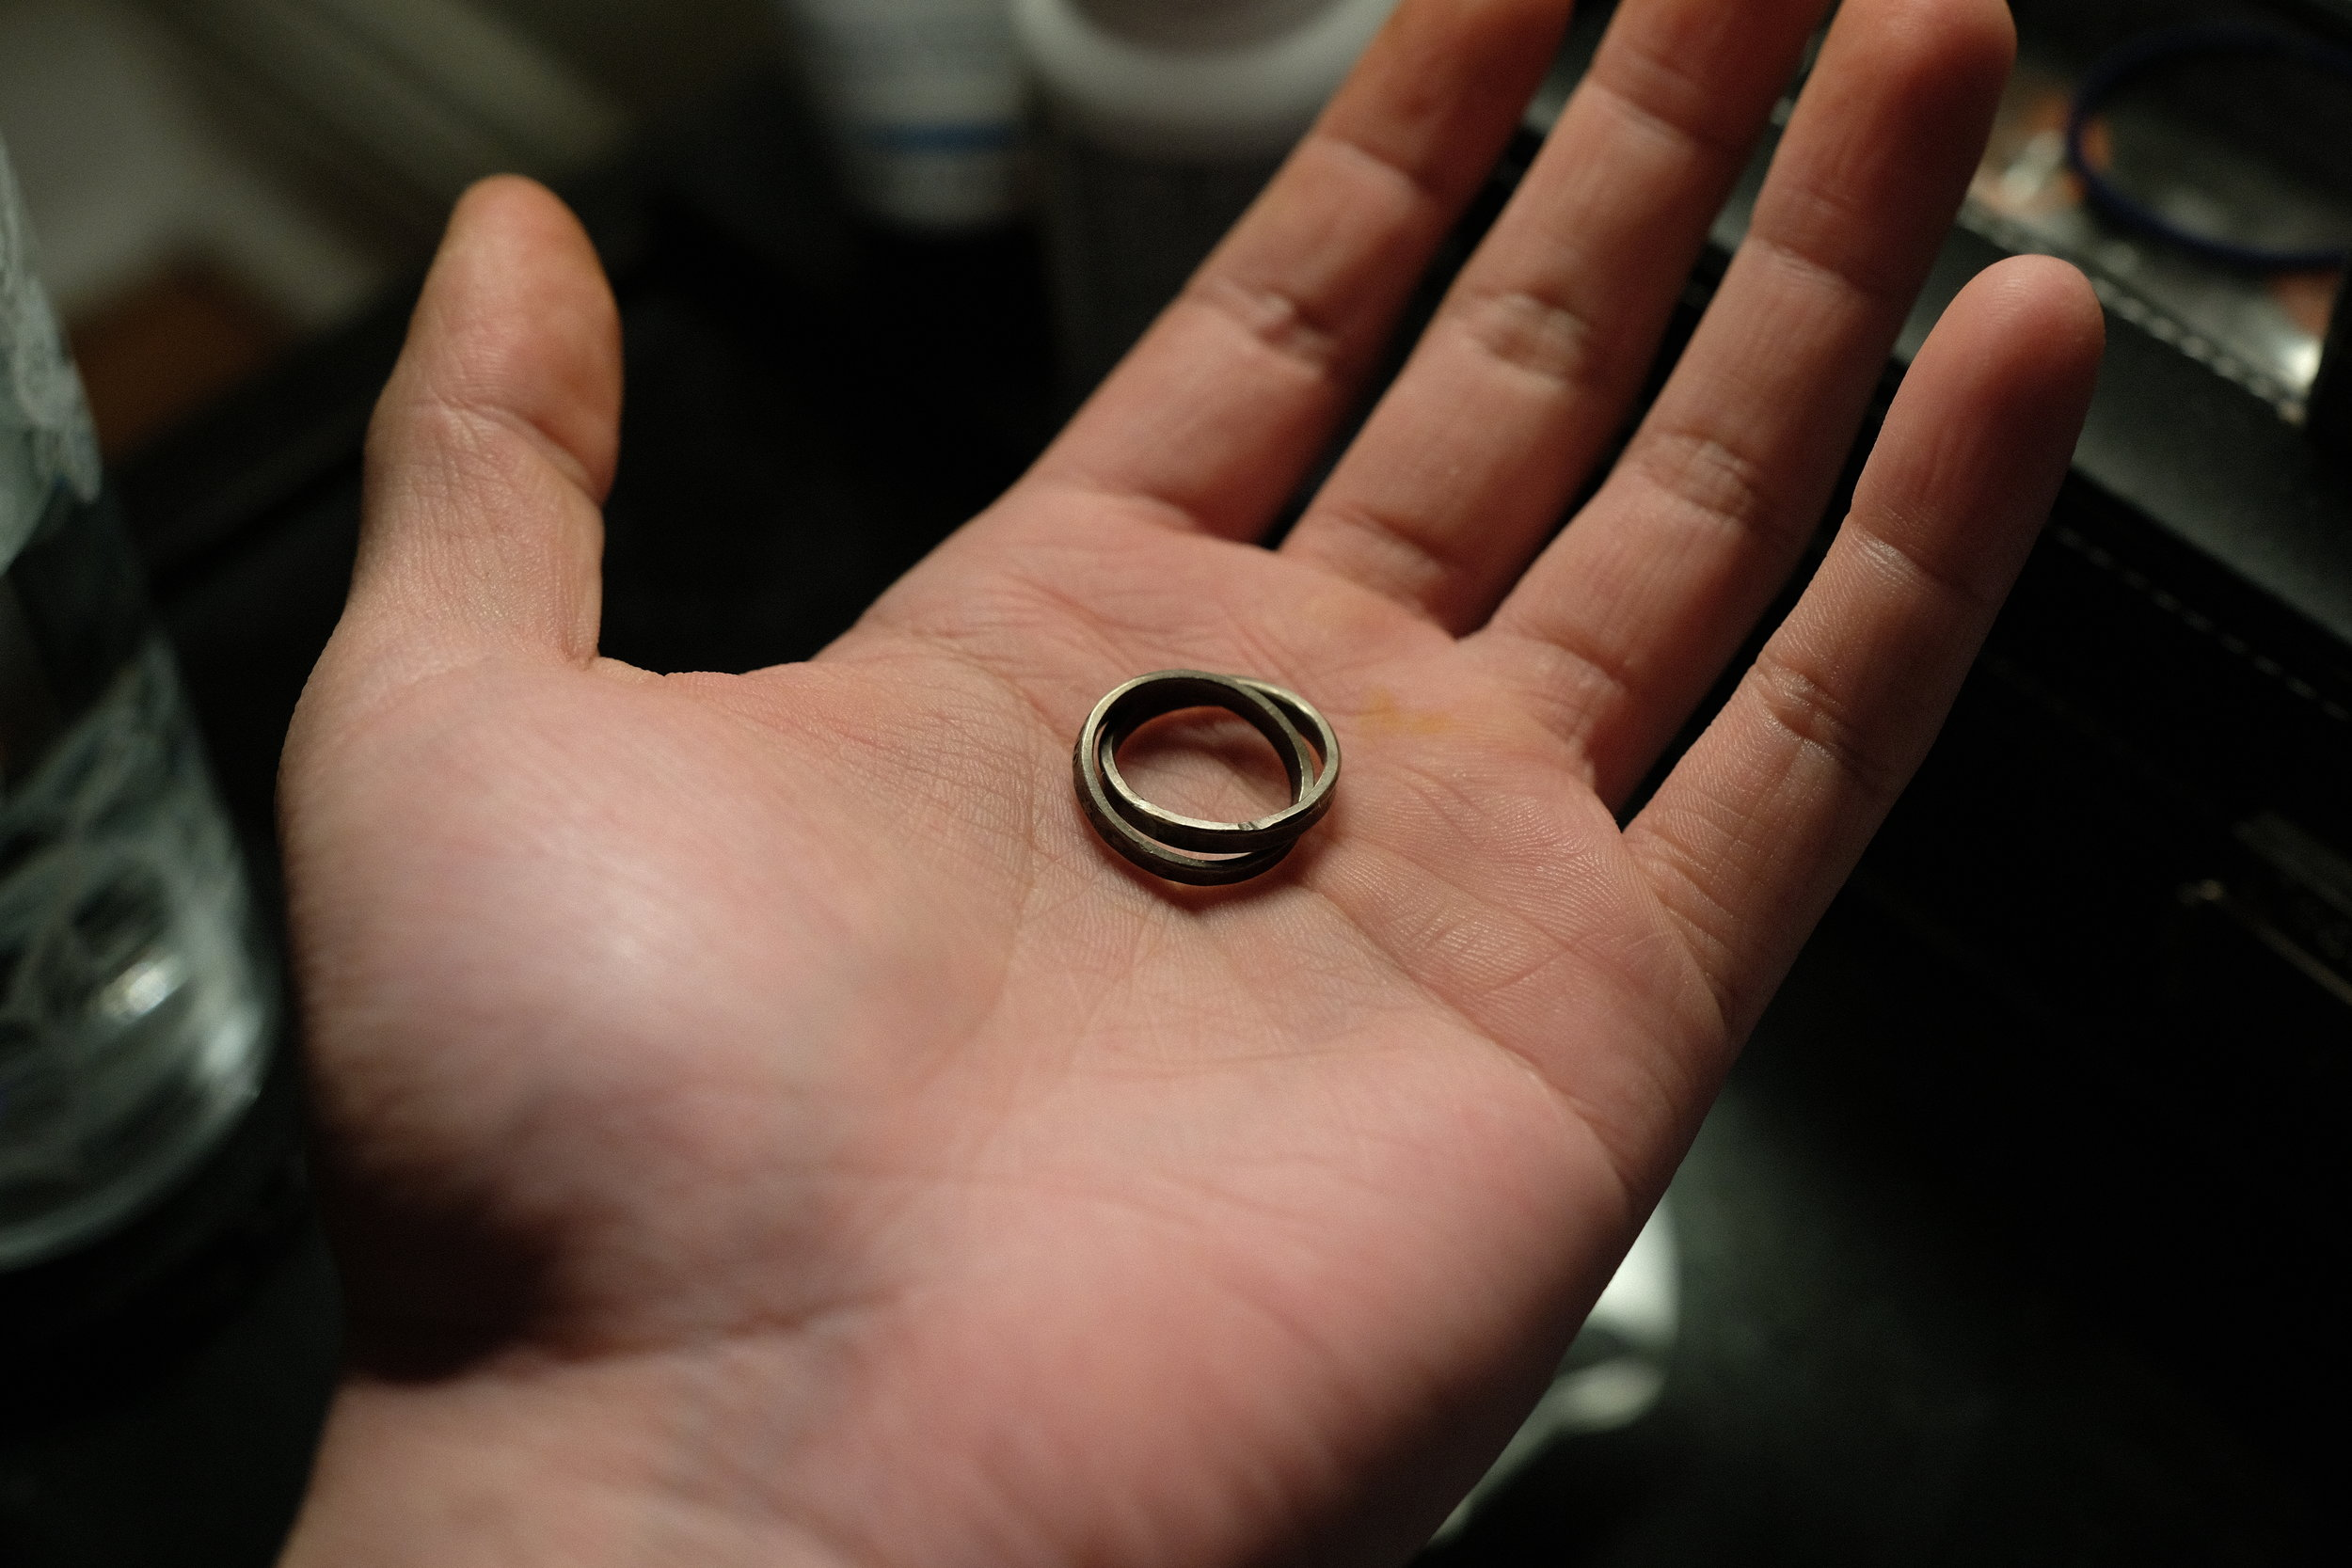 The rings (ring?)after their sulphur bath.